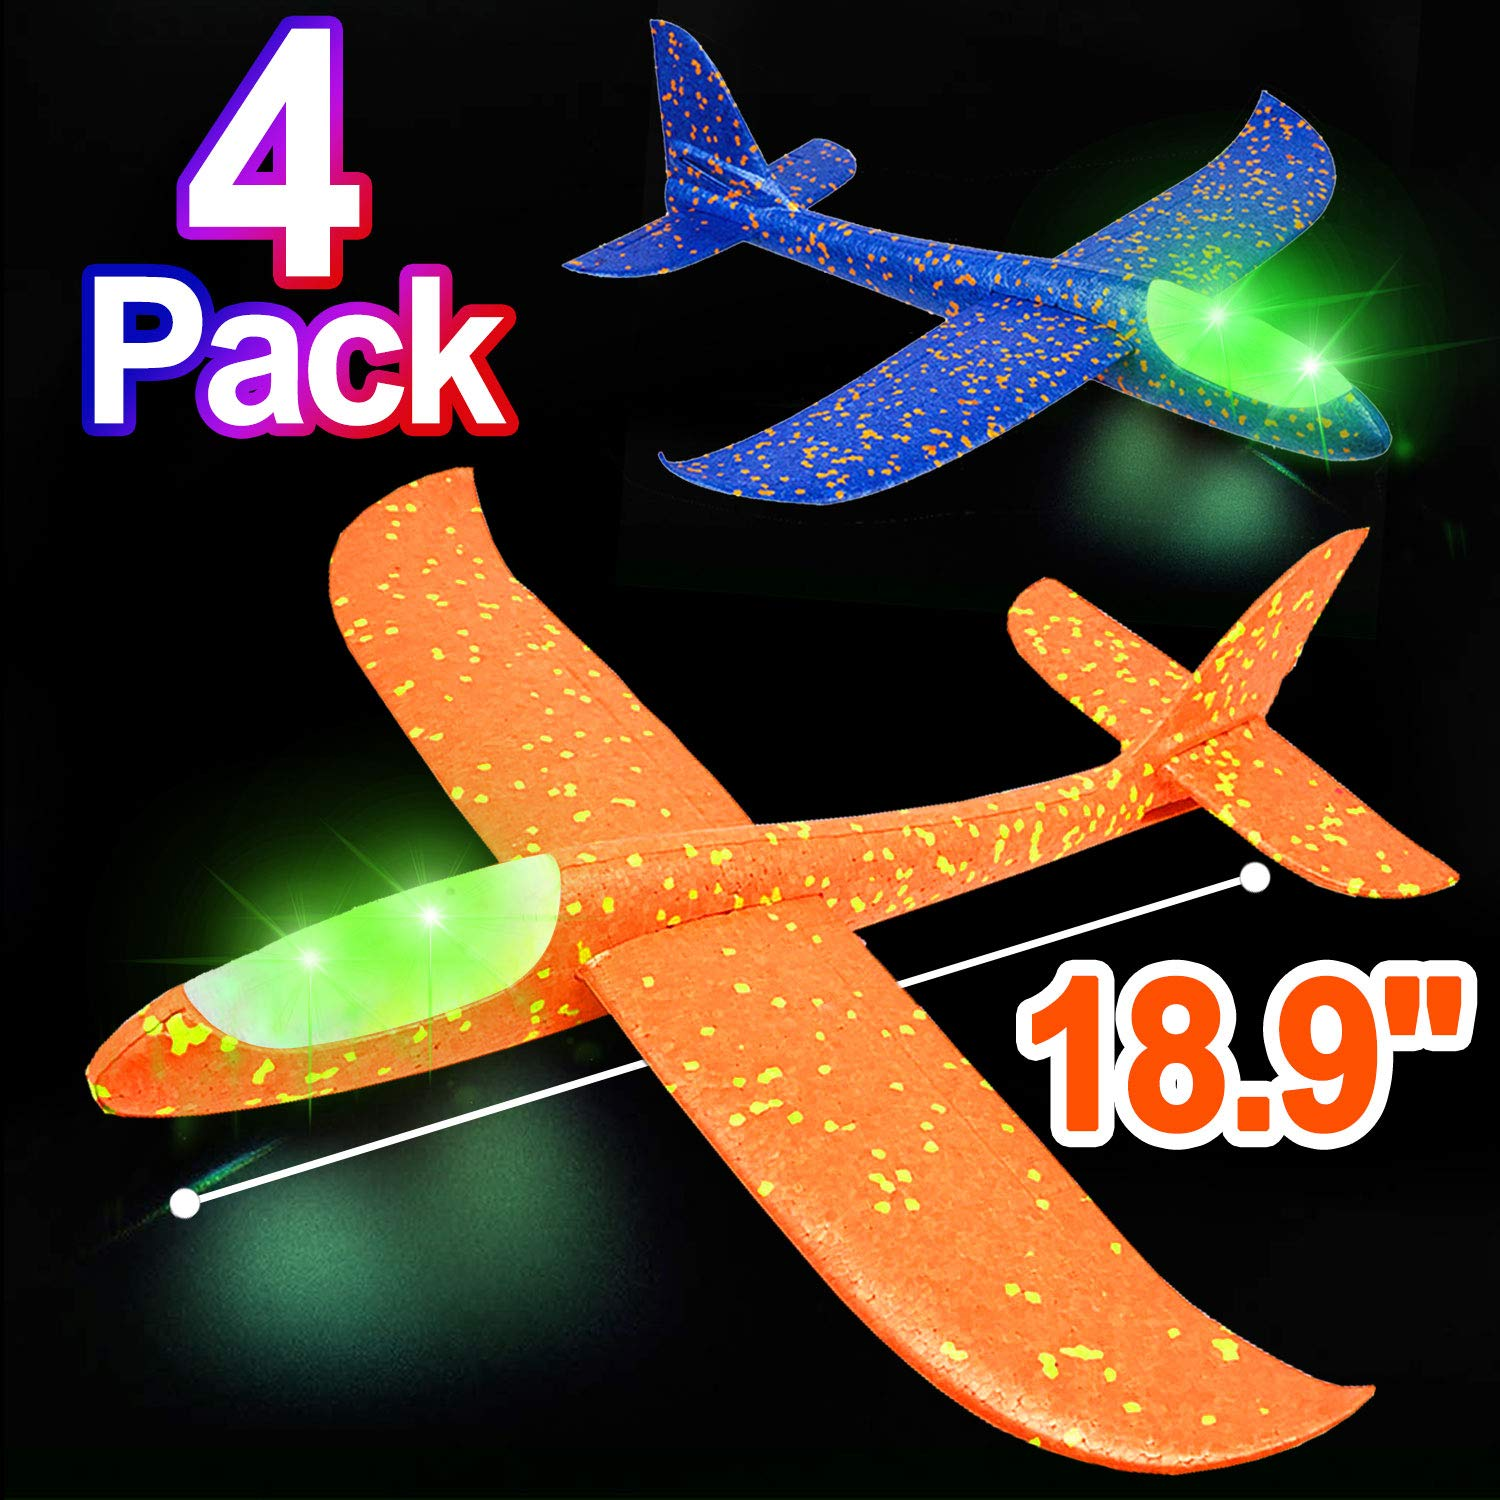 4 Pack 18.9'' Foam Airplane Toys for Kids, Large LED Light Up Throwing Plane Foam Glider Airplane Outdoor Sport Flying Toys for Boys Girls, Flying Game Toy Gift for Kids (A- 4P LED Foam Airplane Toys) by iGeeKid